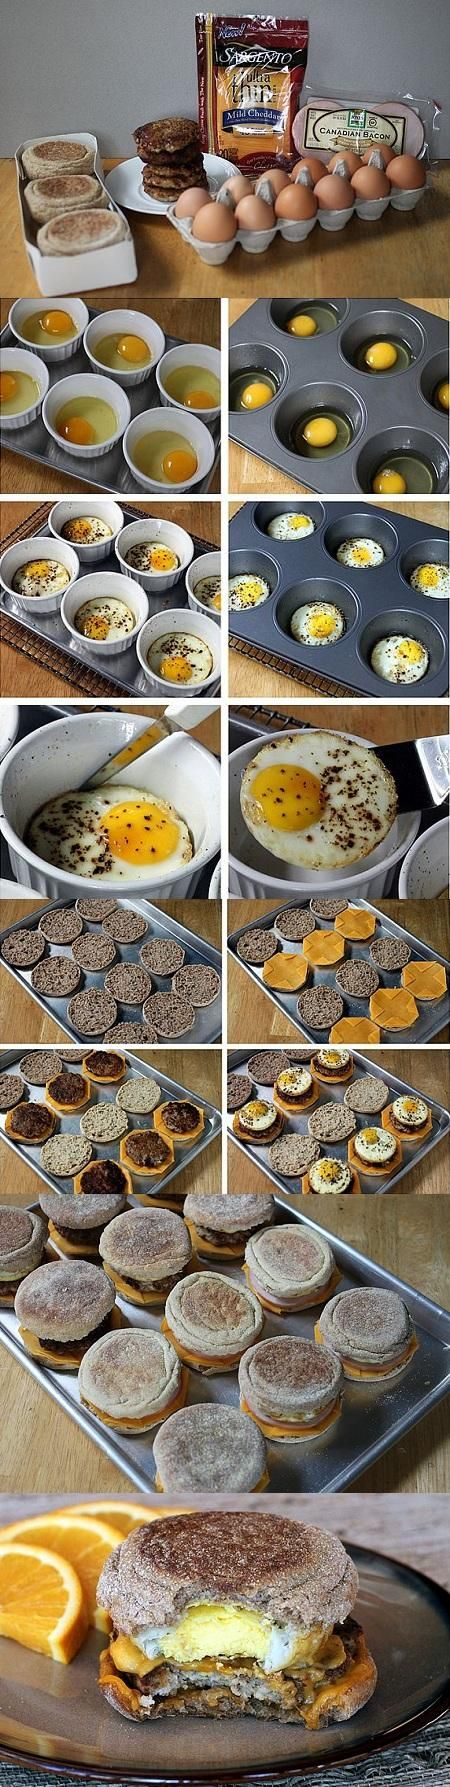 Sausage Egg McMuffuns - these were great! A little time consuming for school mornings, but easily pre-made and frozen. Definitely don't use an ordinary muffin tin for the eggs! *MCB